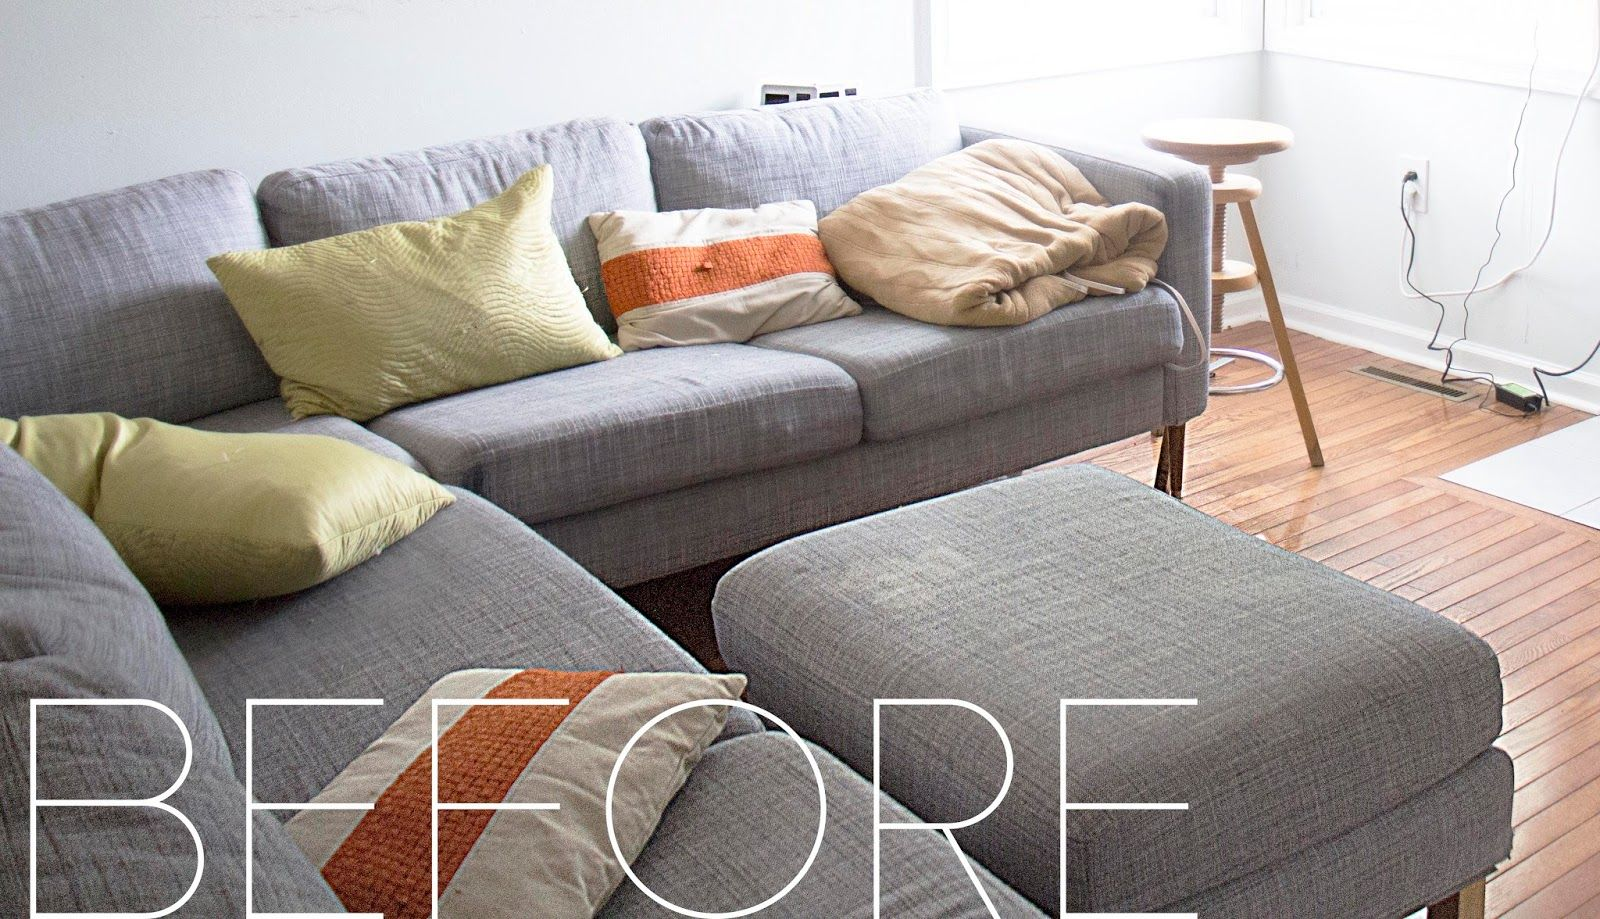 Ikea Couch Covers , Fantastic Ikea Couch Covers